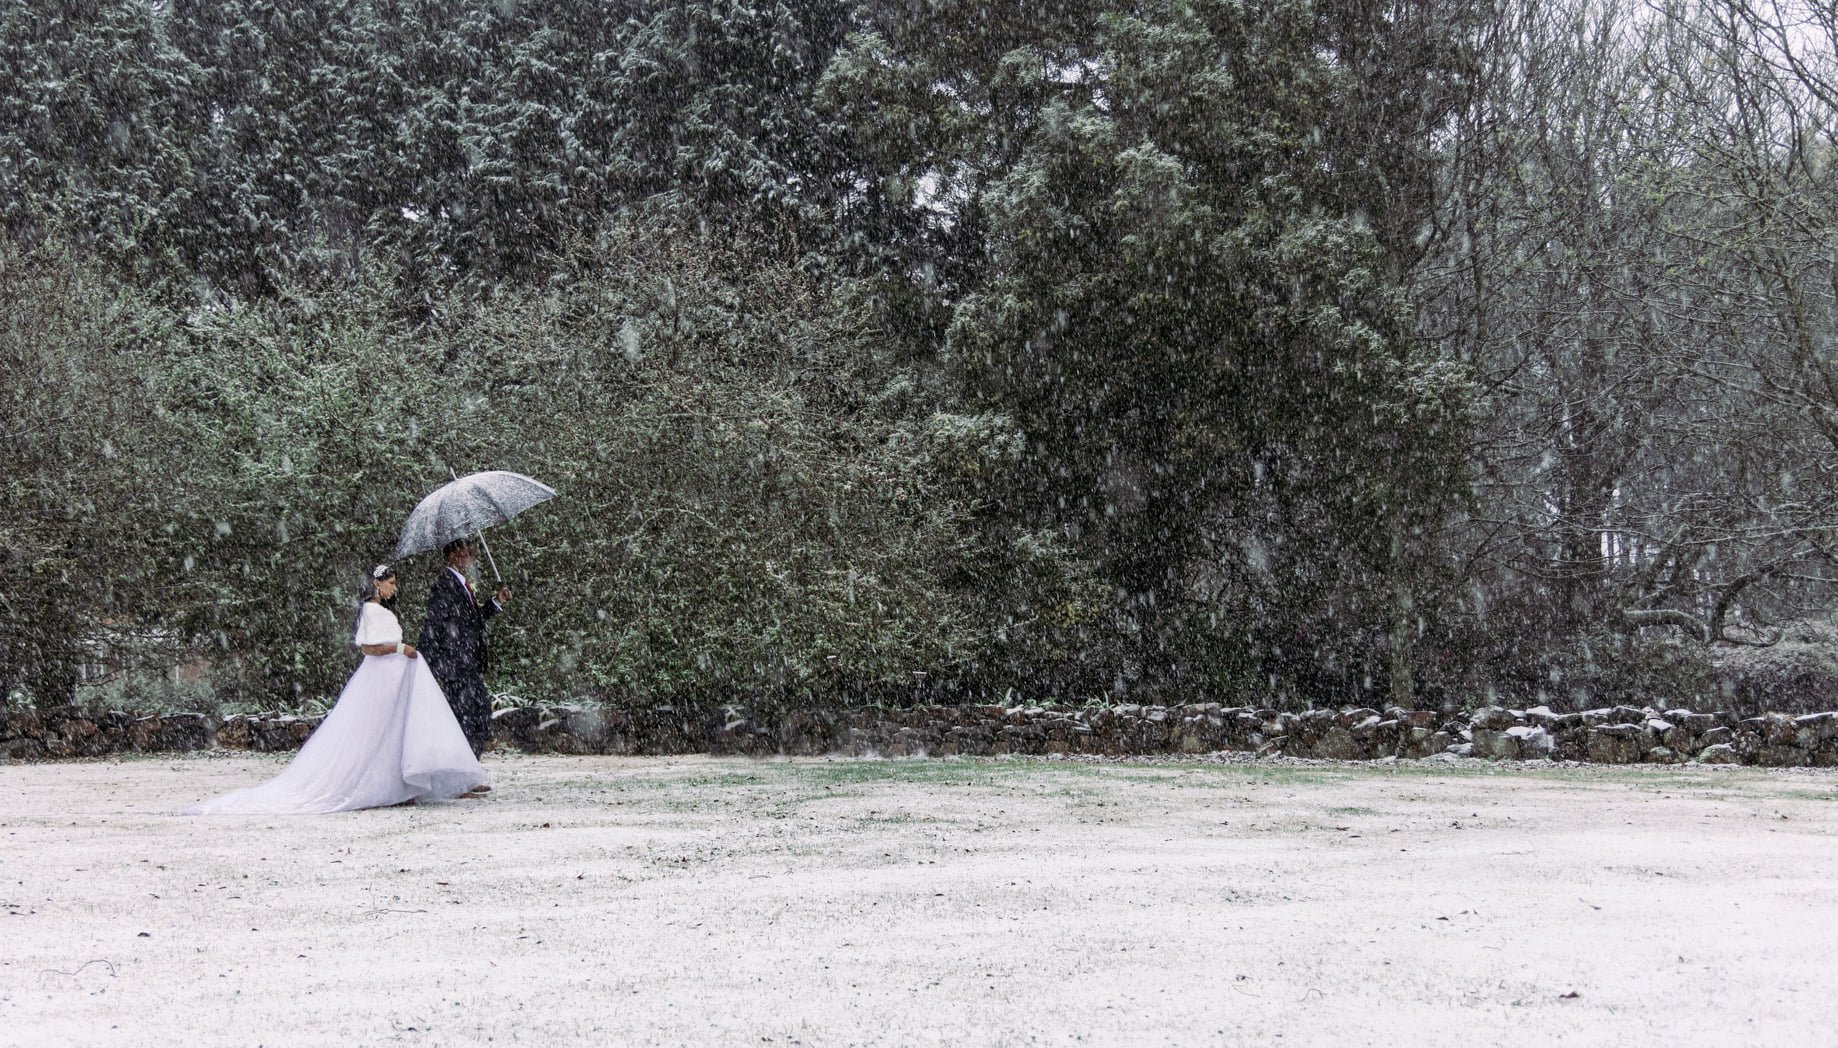 Local Durban couple celebrate marriage in winter wonderland pictures